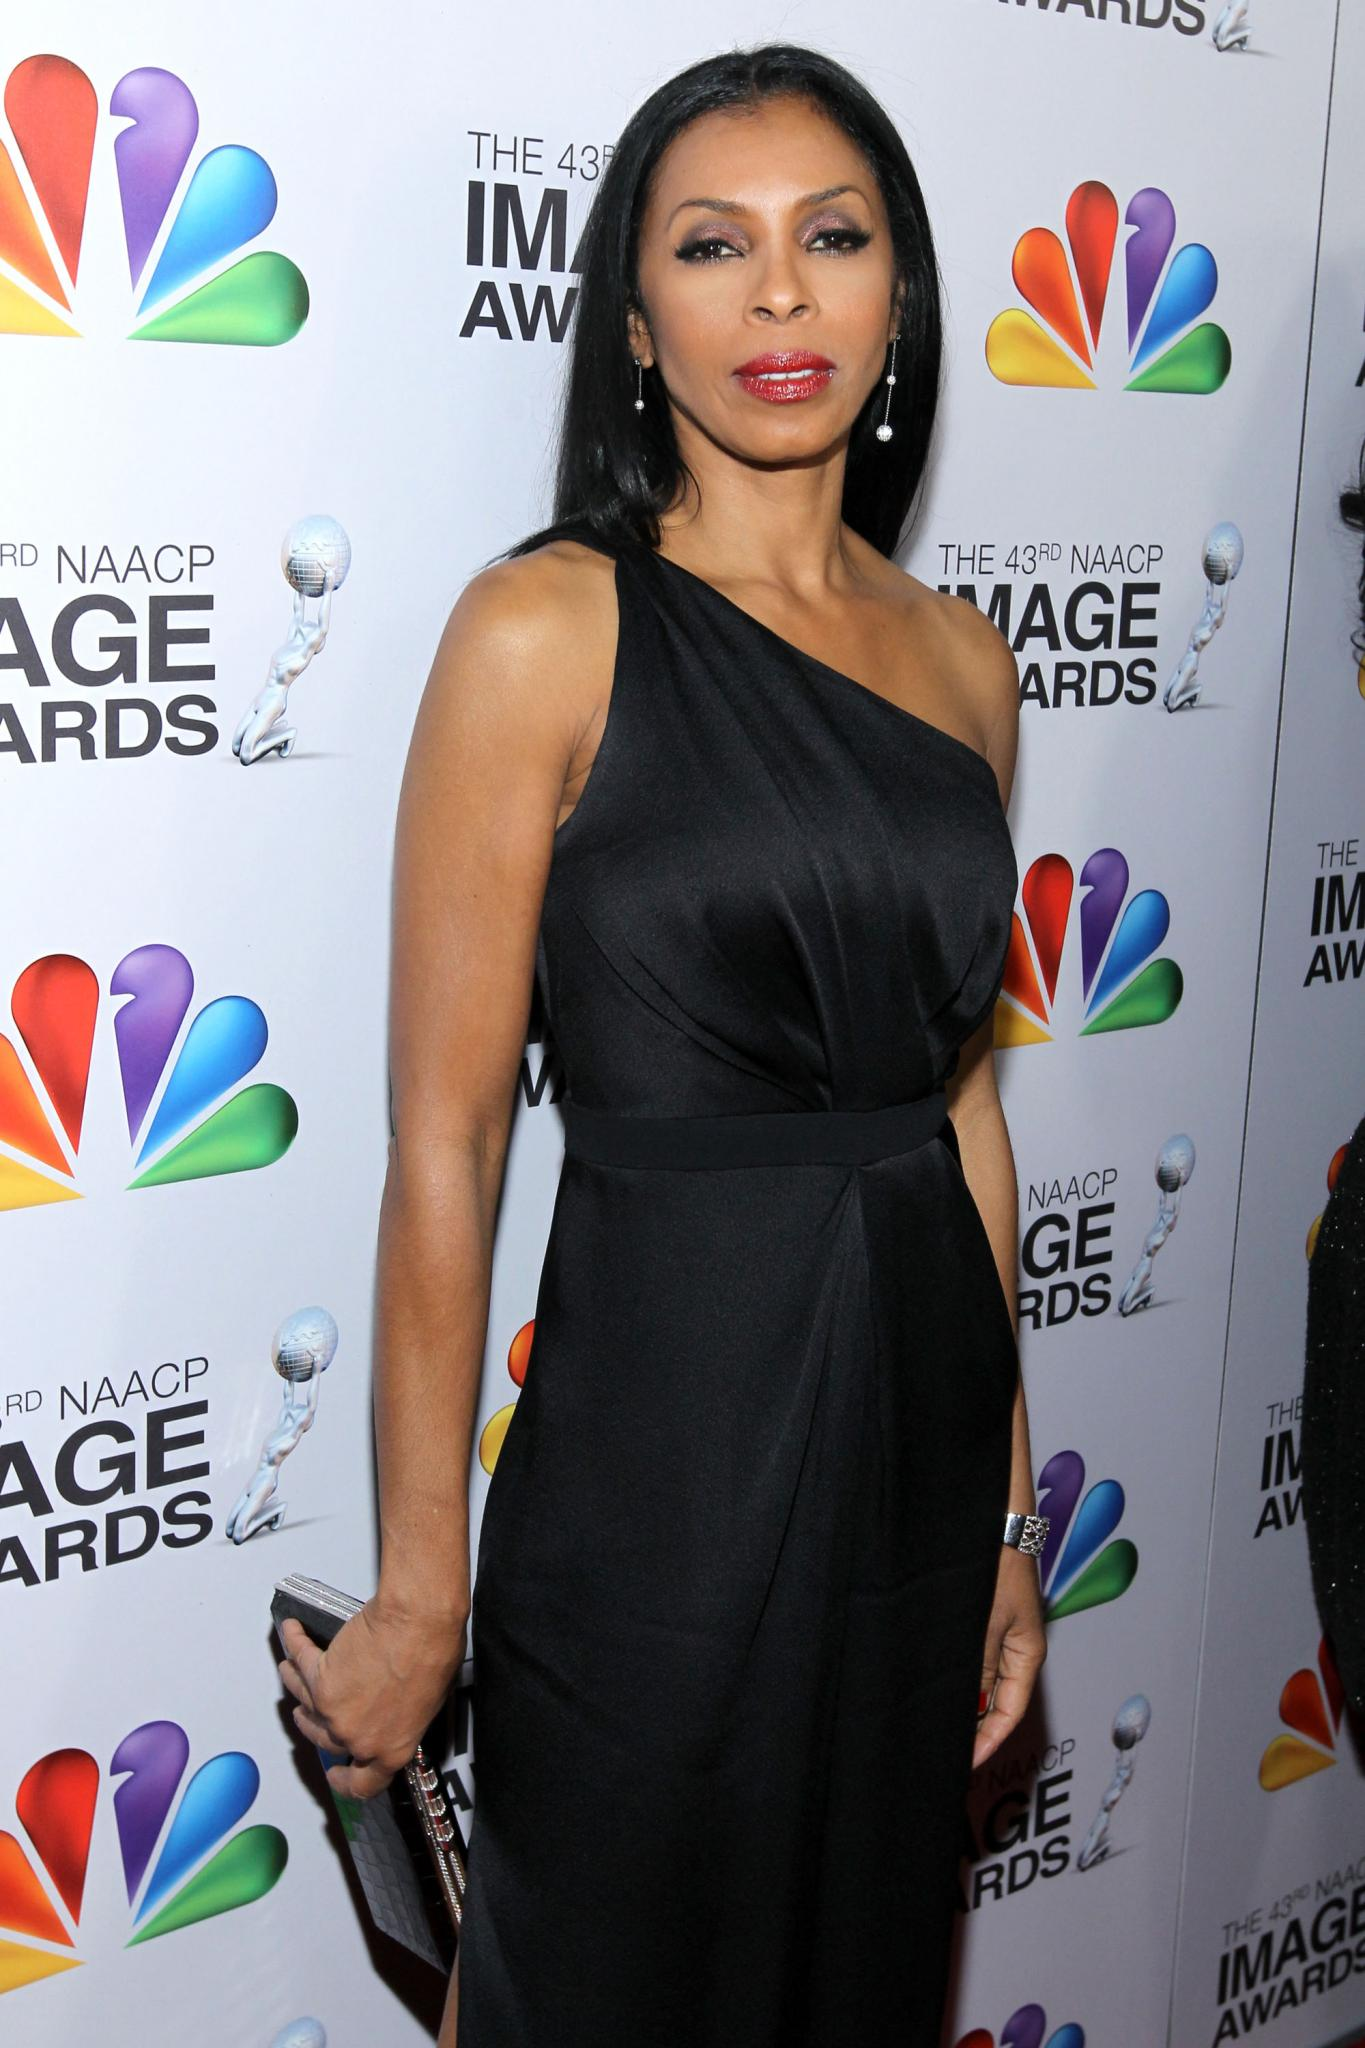 khandi alexander marriedkhandi alexander instagram, khandi alexander height, khandi alexander leaves csi miami, khandi alexander, khandi alexander husband, khandi alexander young, khandi alexander fahrenheit 451, khandi alexander joe rogan, khandi alexander csi, khandi alexander net worth, khandi alexander age, khandi alexander imdb, khandi alexander csi miami, khandi alexander movies, khandi alexander married, khandi alexander 2018, khandi alexander cb4, khandi alexander plastic surgery, khandi alexander newsradio, khandi alexander wiki